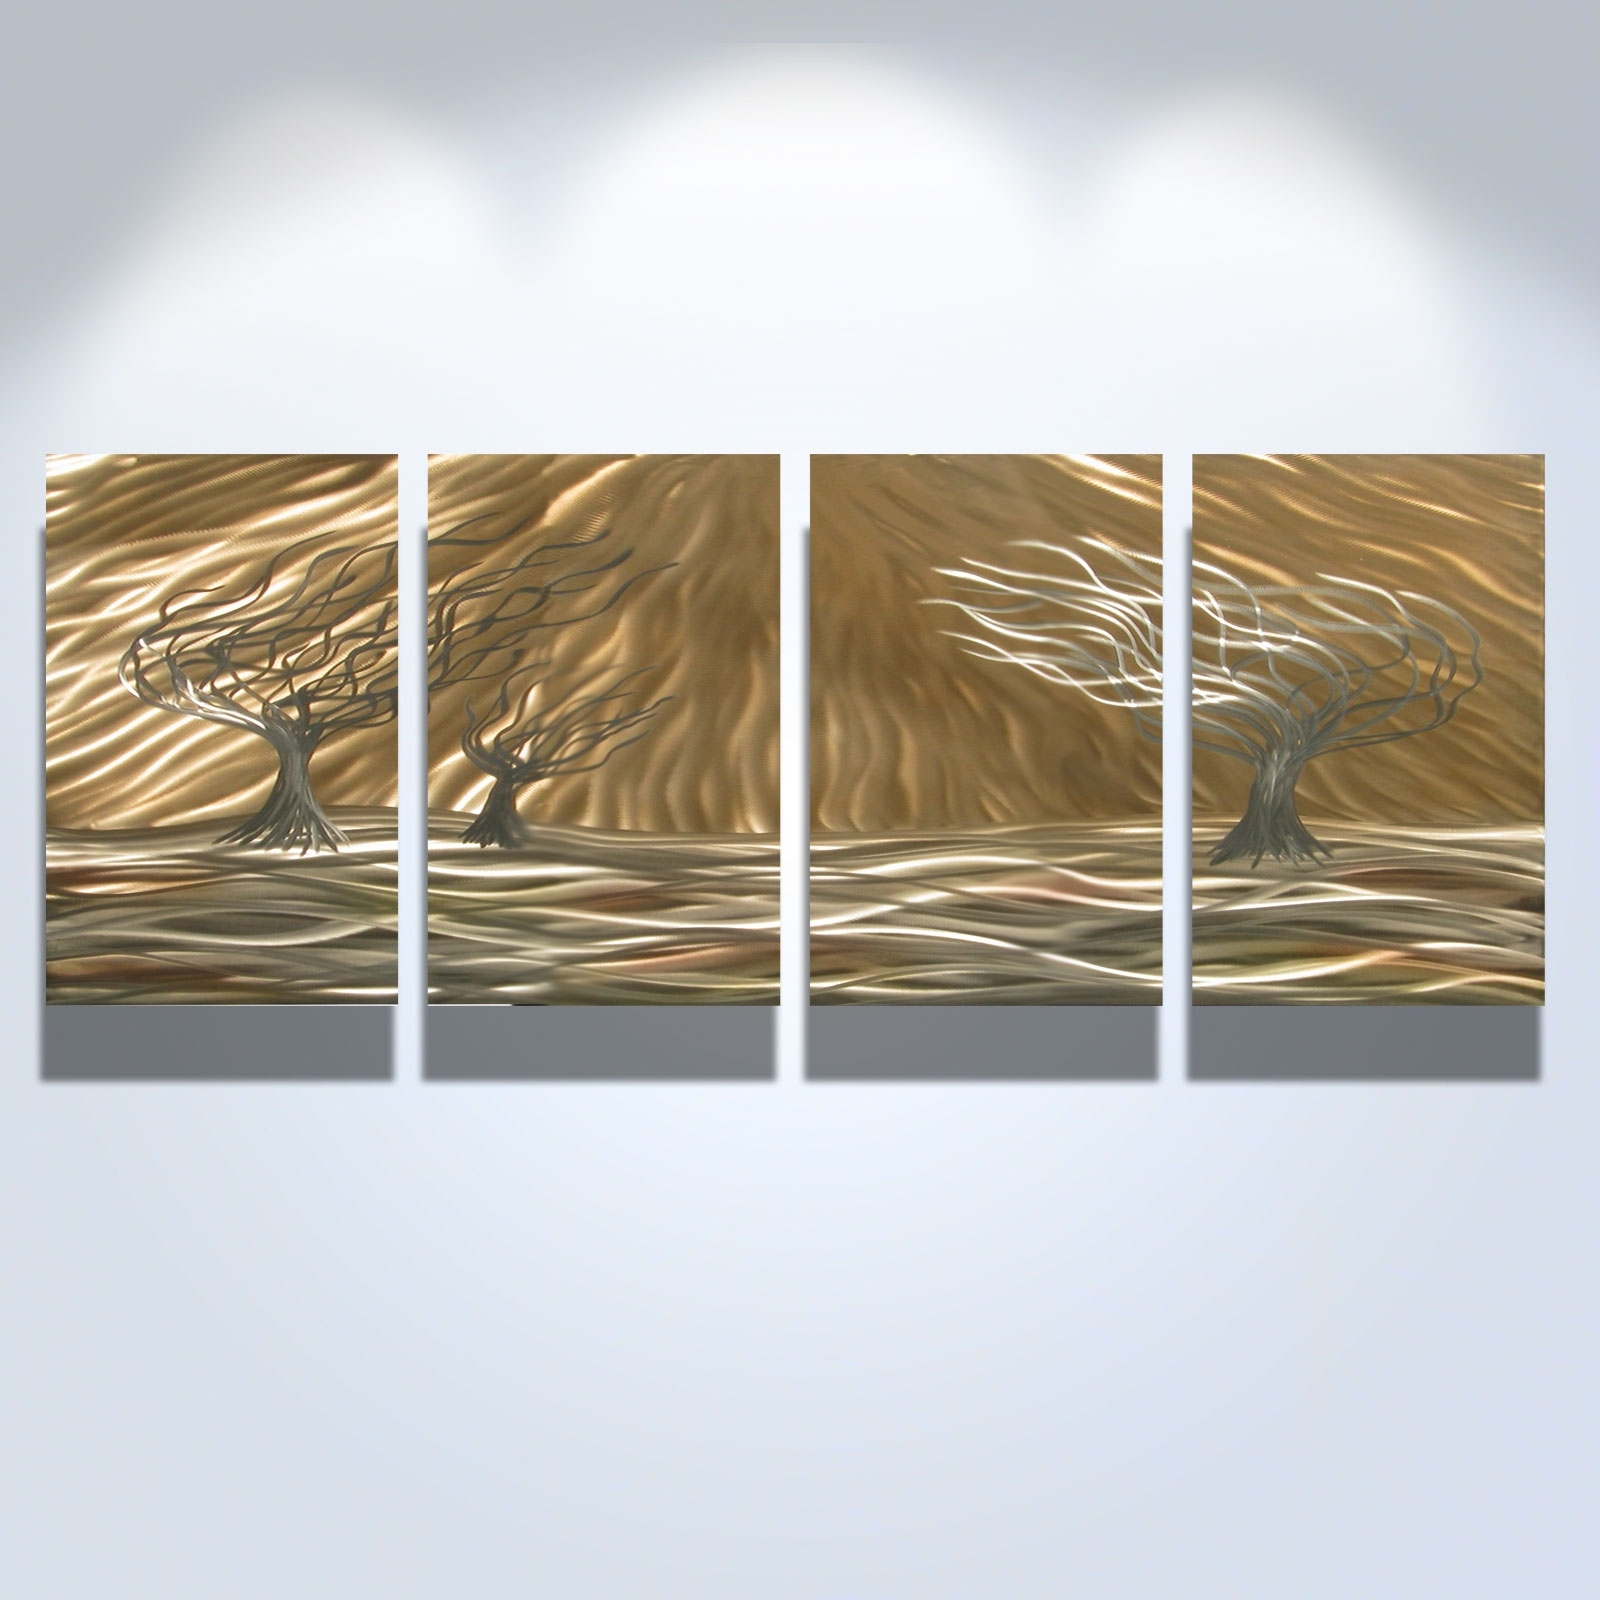 Favorite 3 Trees 4 Panel – Abstract Metal Wall Art Contemporary Modern Pertaining To Abstract Wall Art (View 8 of 15)